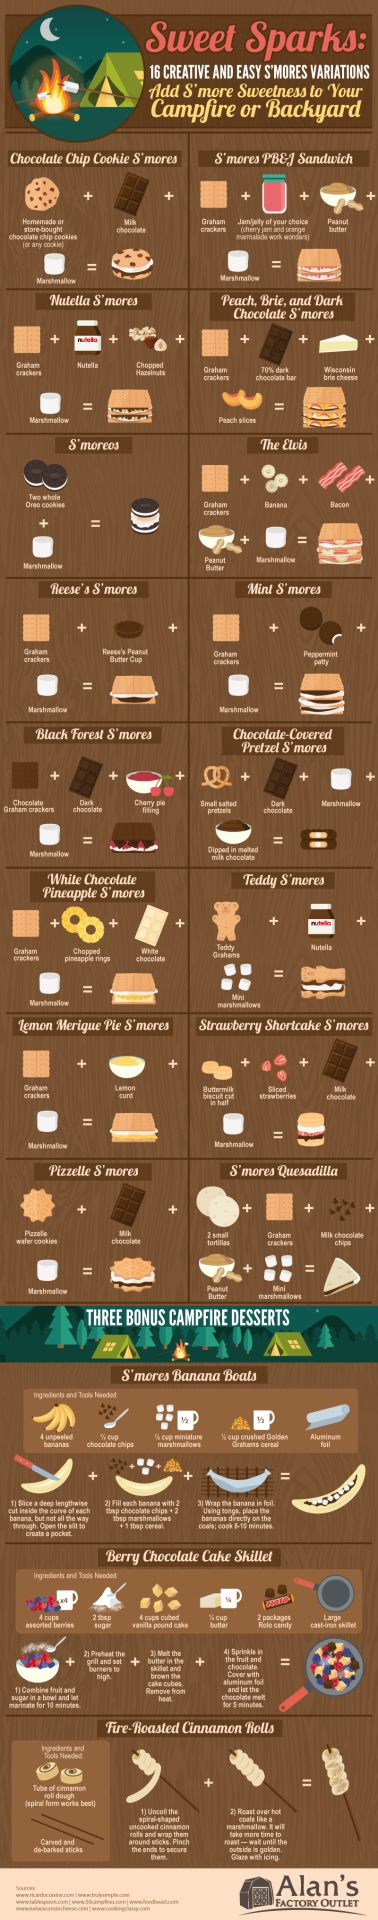 """16 creative and easy s'mores variation recipes - including """"The Elvis""""!"""